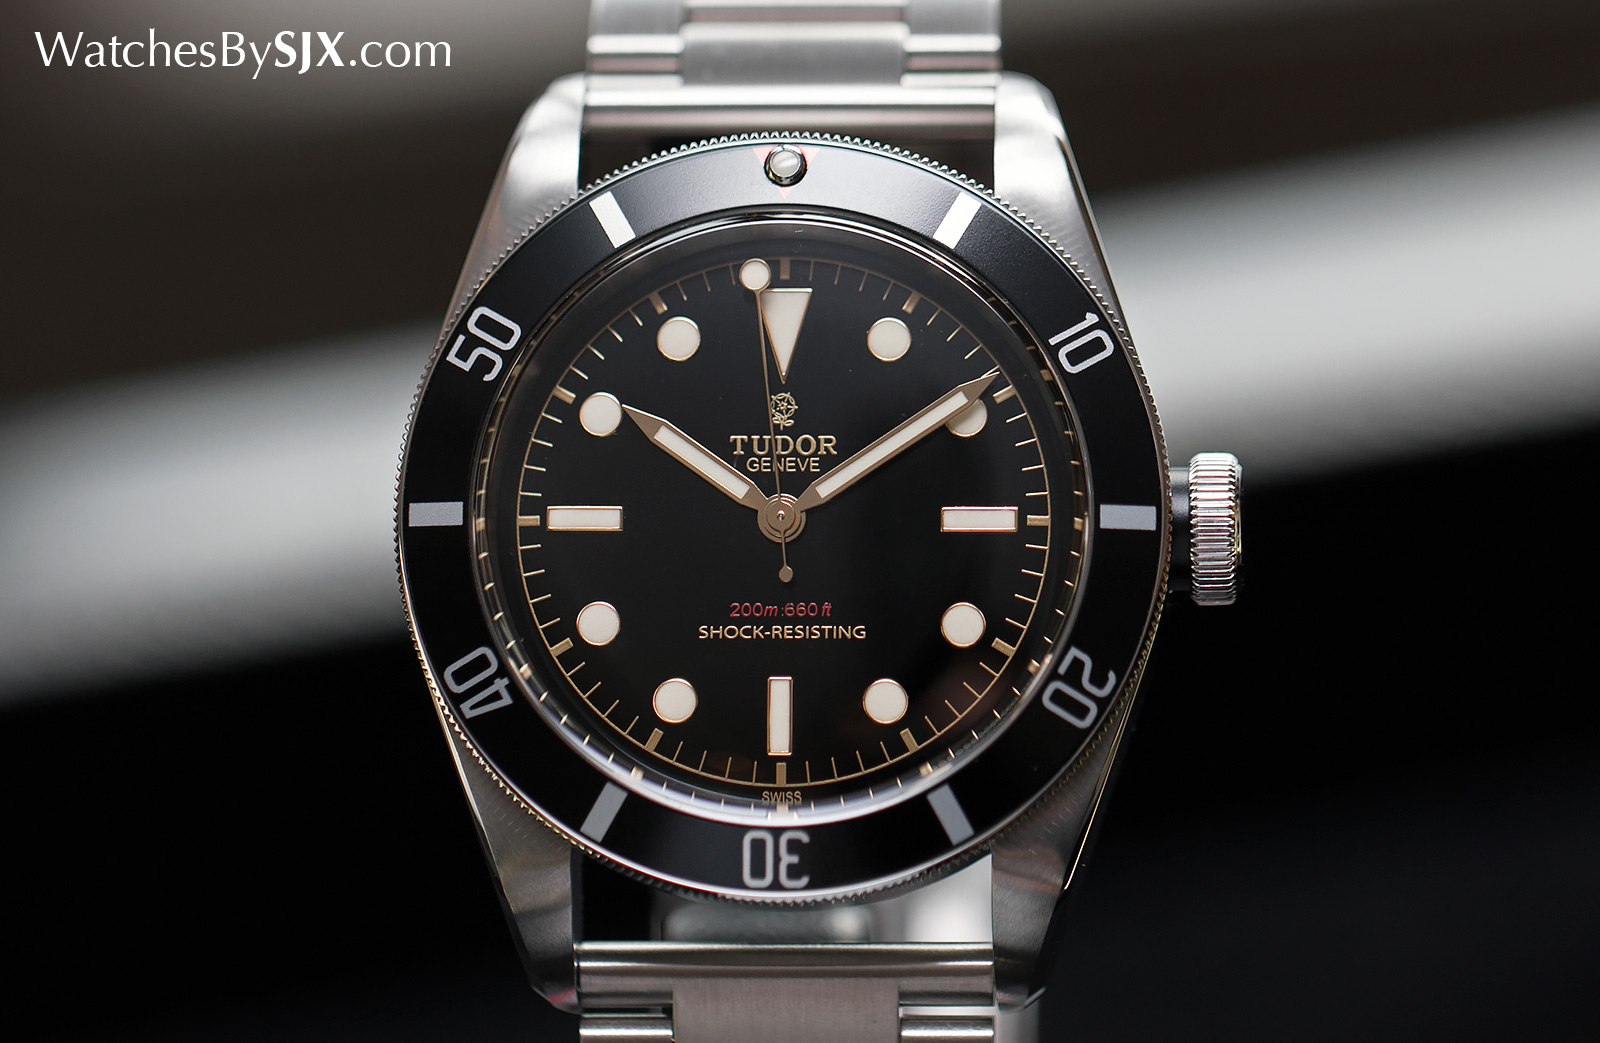 Watches by sjx breaking news tudor black bay one sells for astonishing sfr375 000 - Tudor dive watch price ...